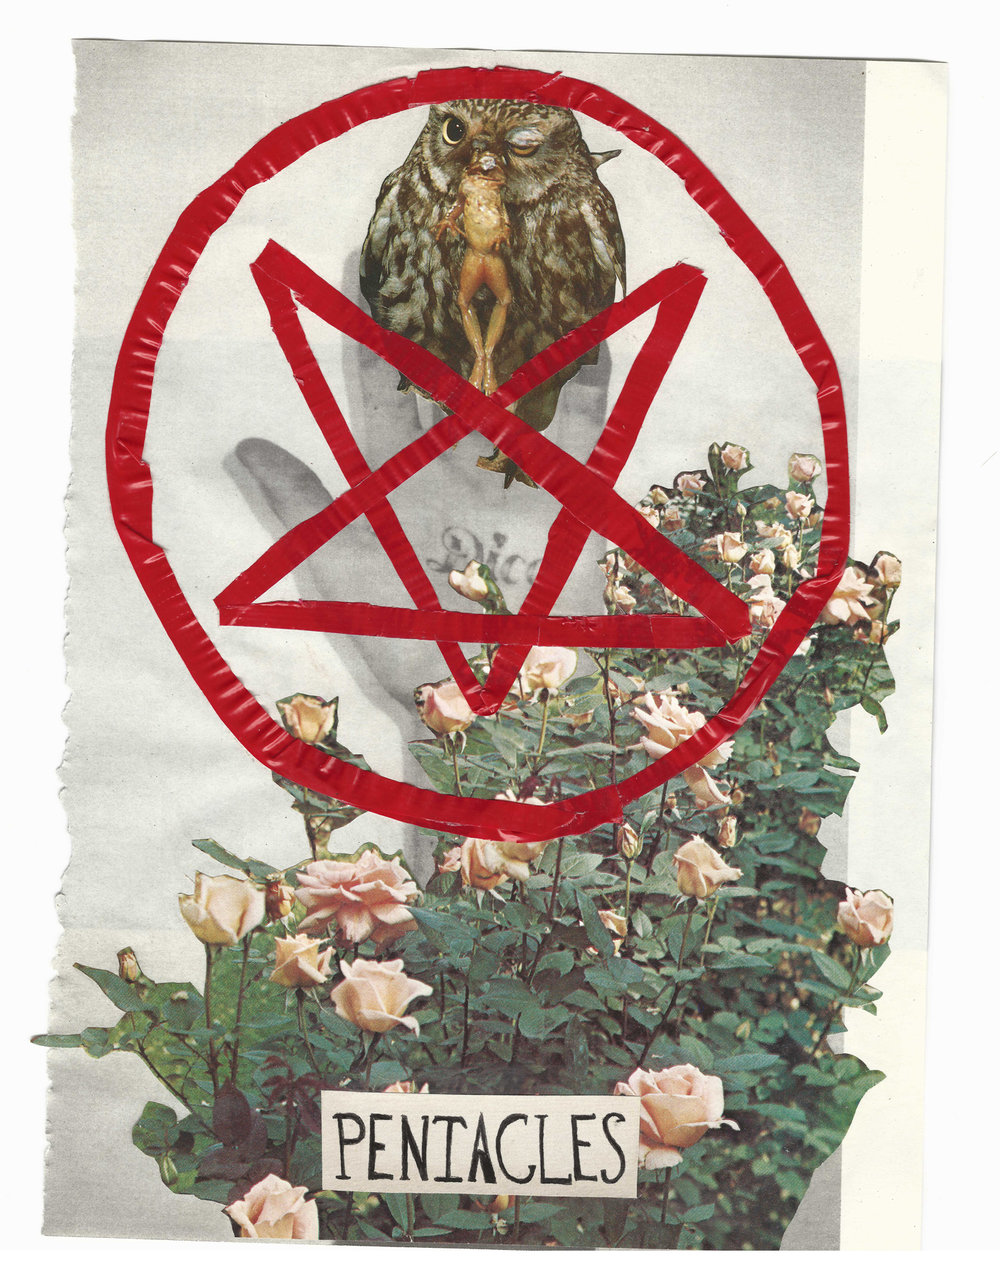 Ace of Pentacles (The Gift of Earth: Wealth, Security, Joyful Life), 2016.